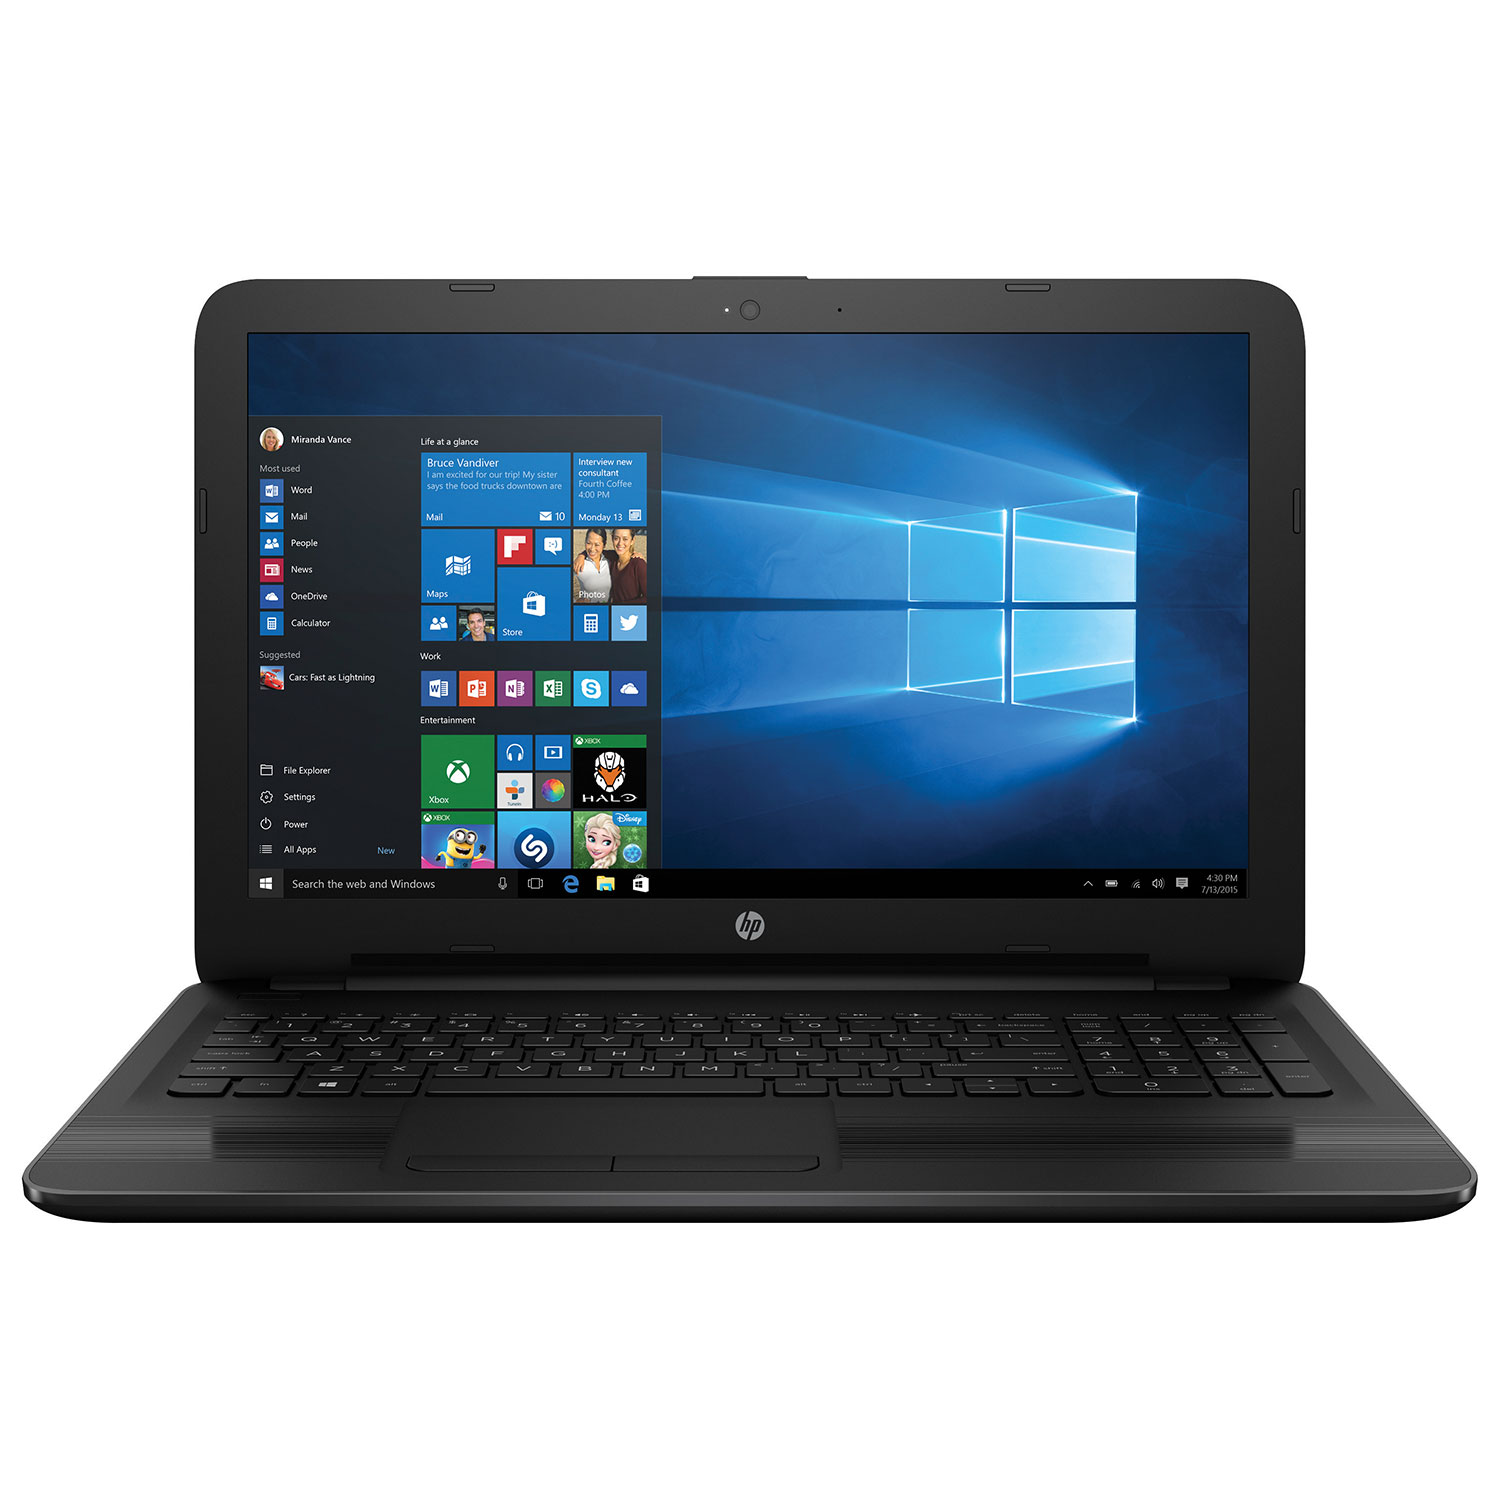 Hp notebook running very slow